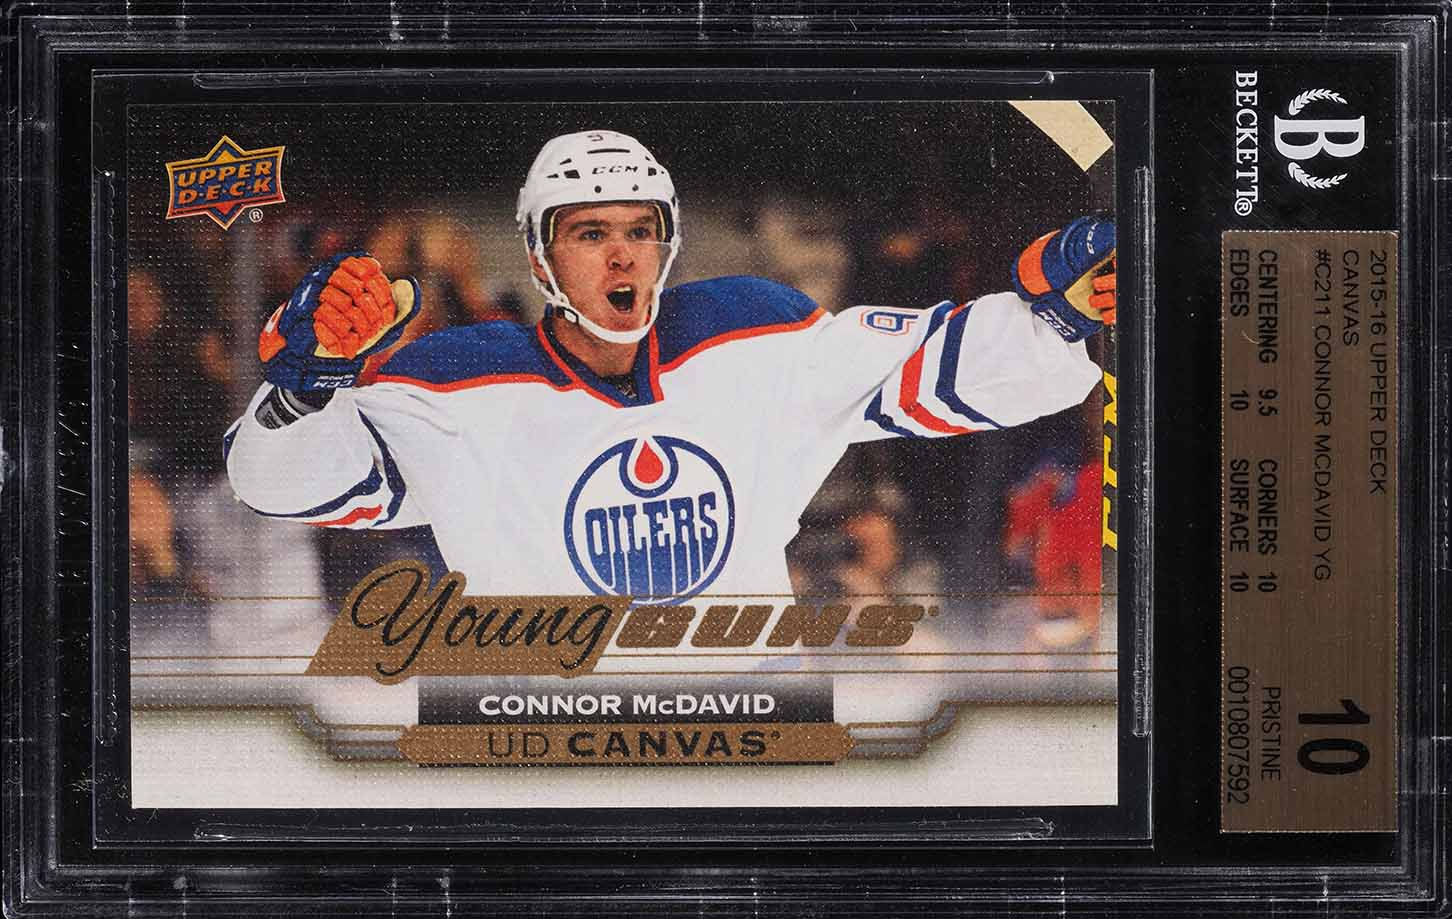 2015 Upper Deck Young Guns Canvas Connor McDavid ROOKIE RC #C211 BGS 10 (PWCC) - Image 1